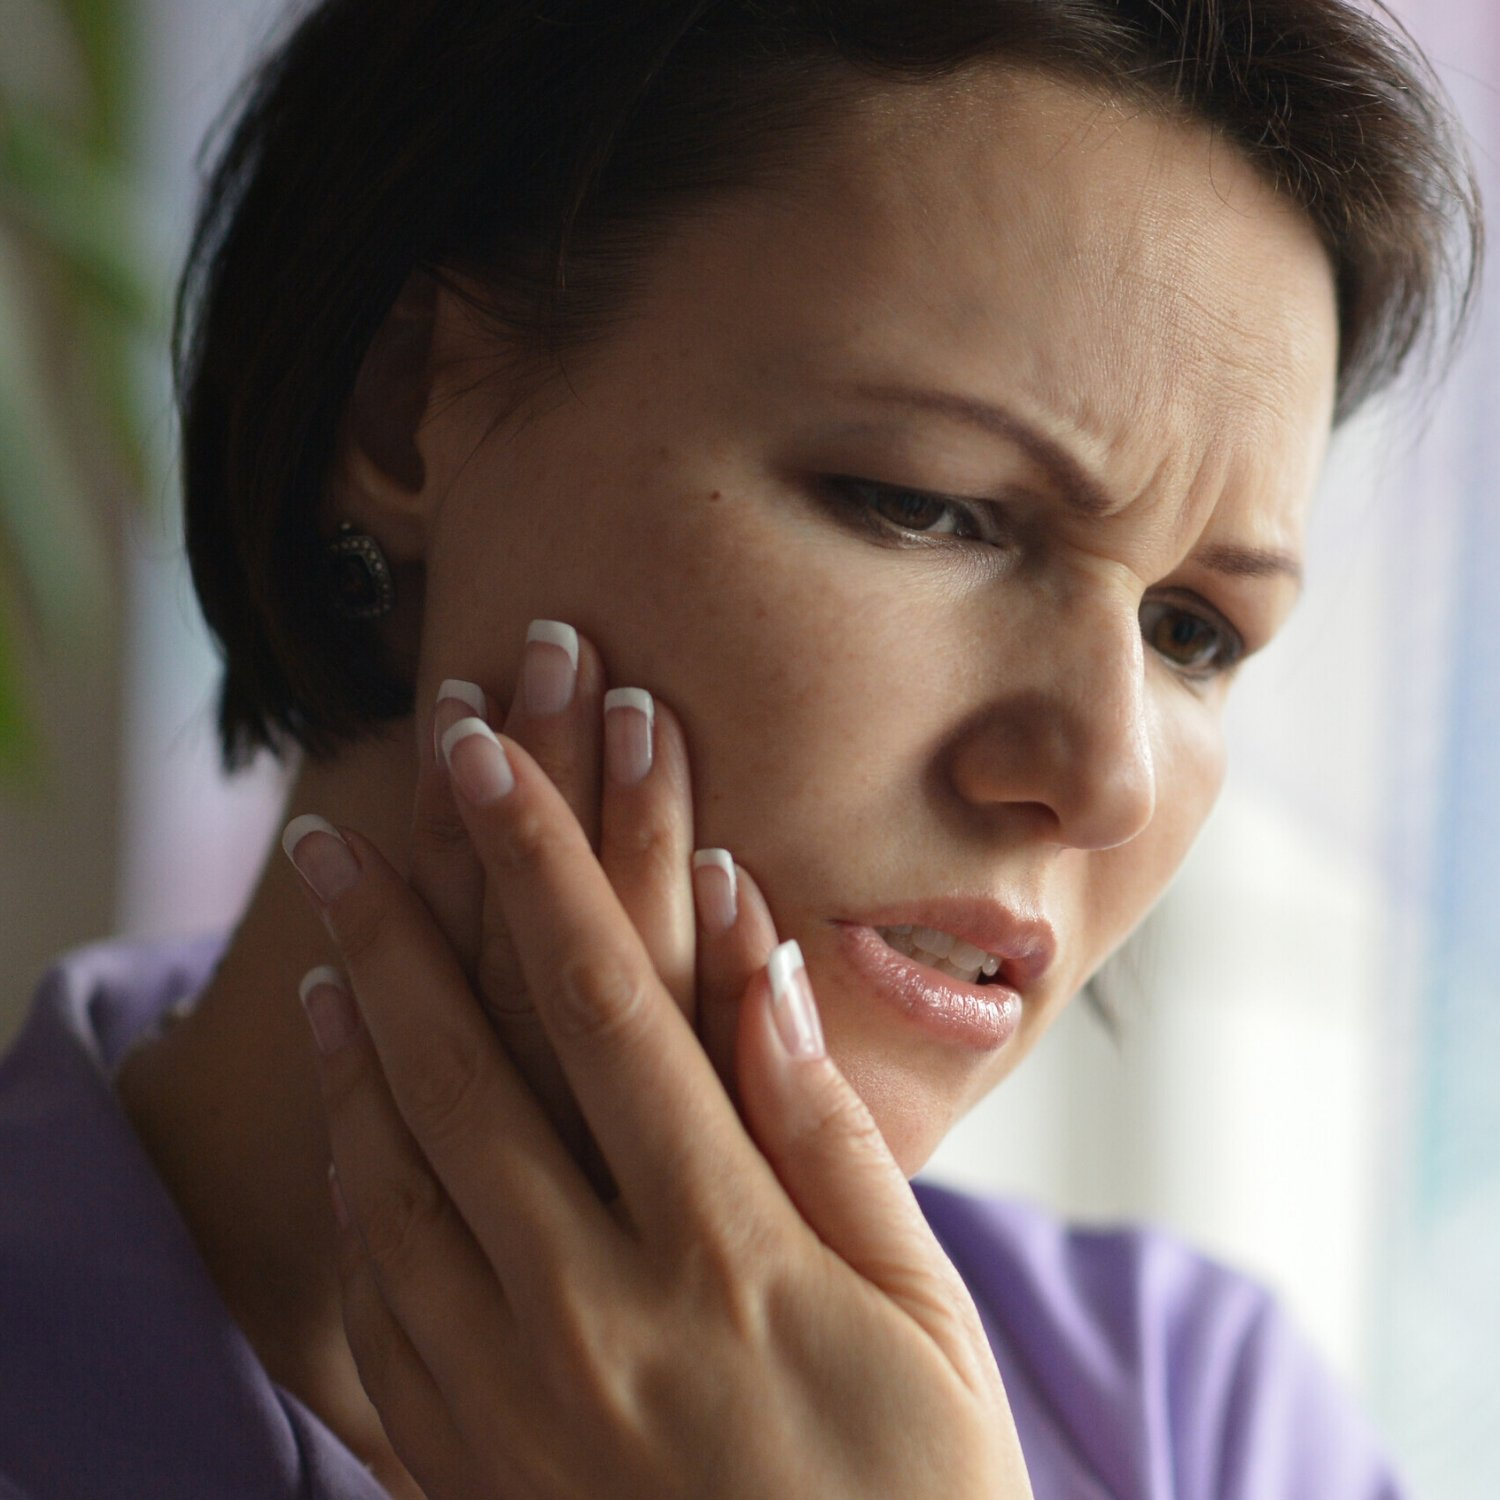 woman with dental pain -  Dentist in Peoria, AZ 85383